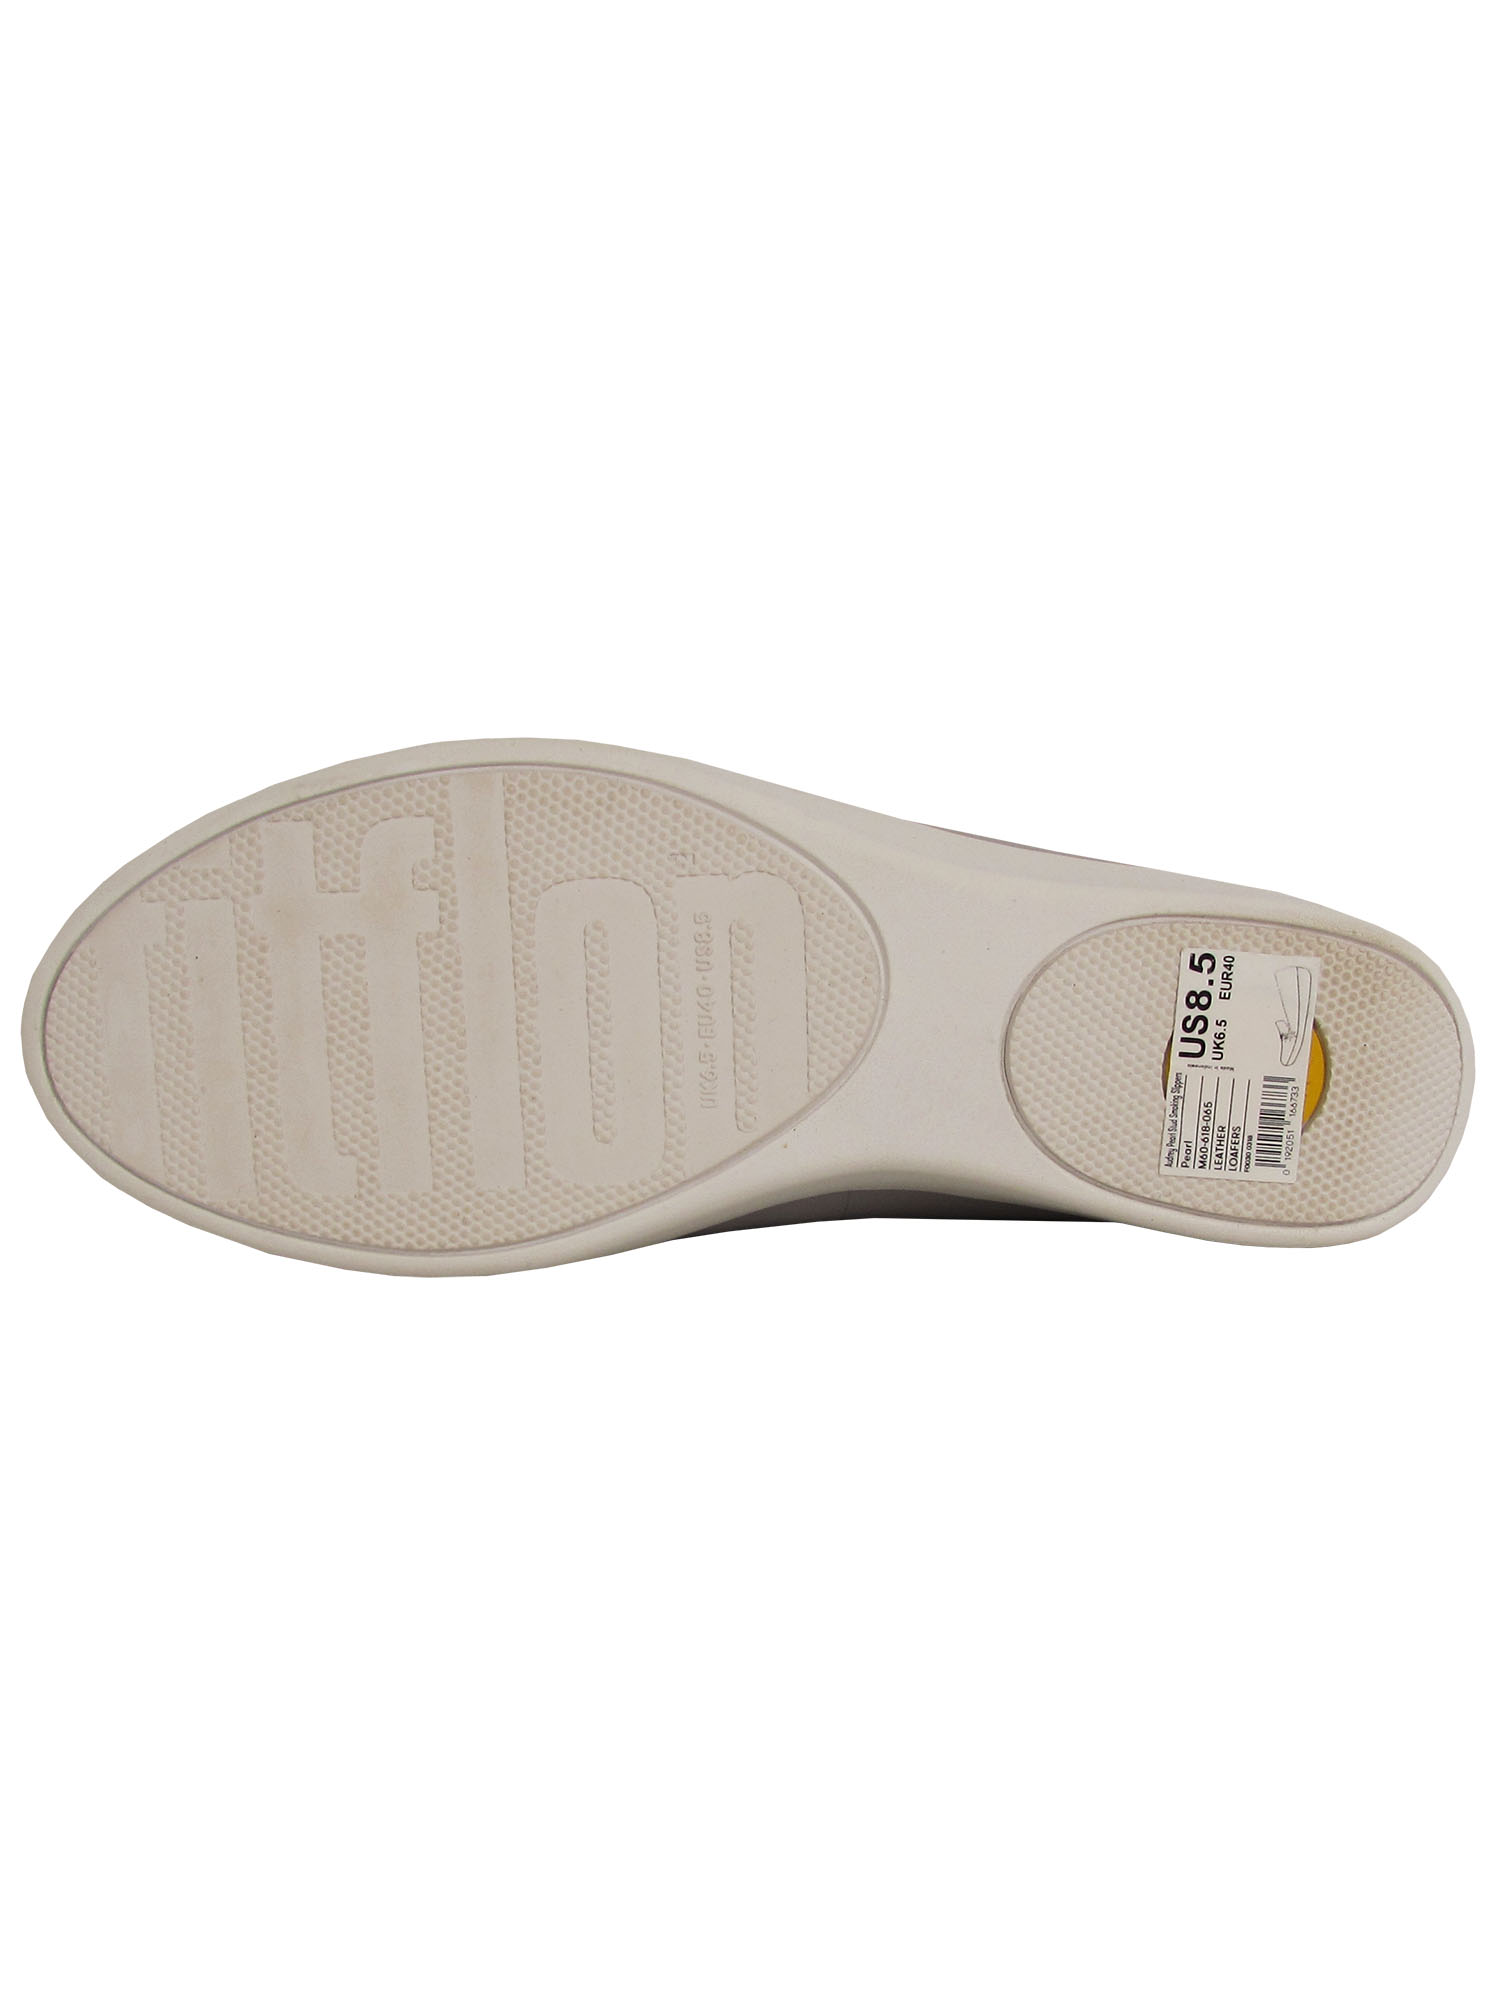 Fitflop-Womens-Audrey-Pearl-Stud-Smoking-Slipper-Shoes thumbnail 9